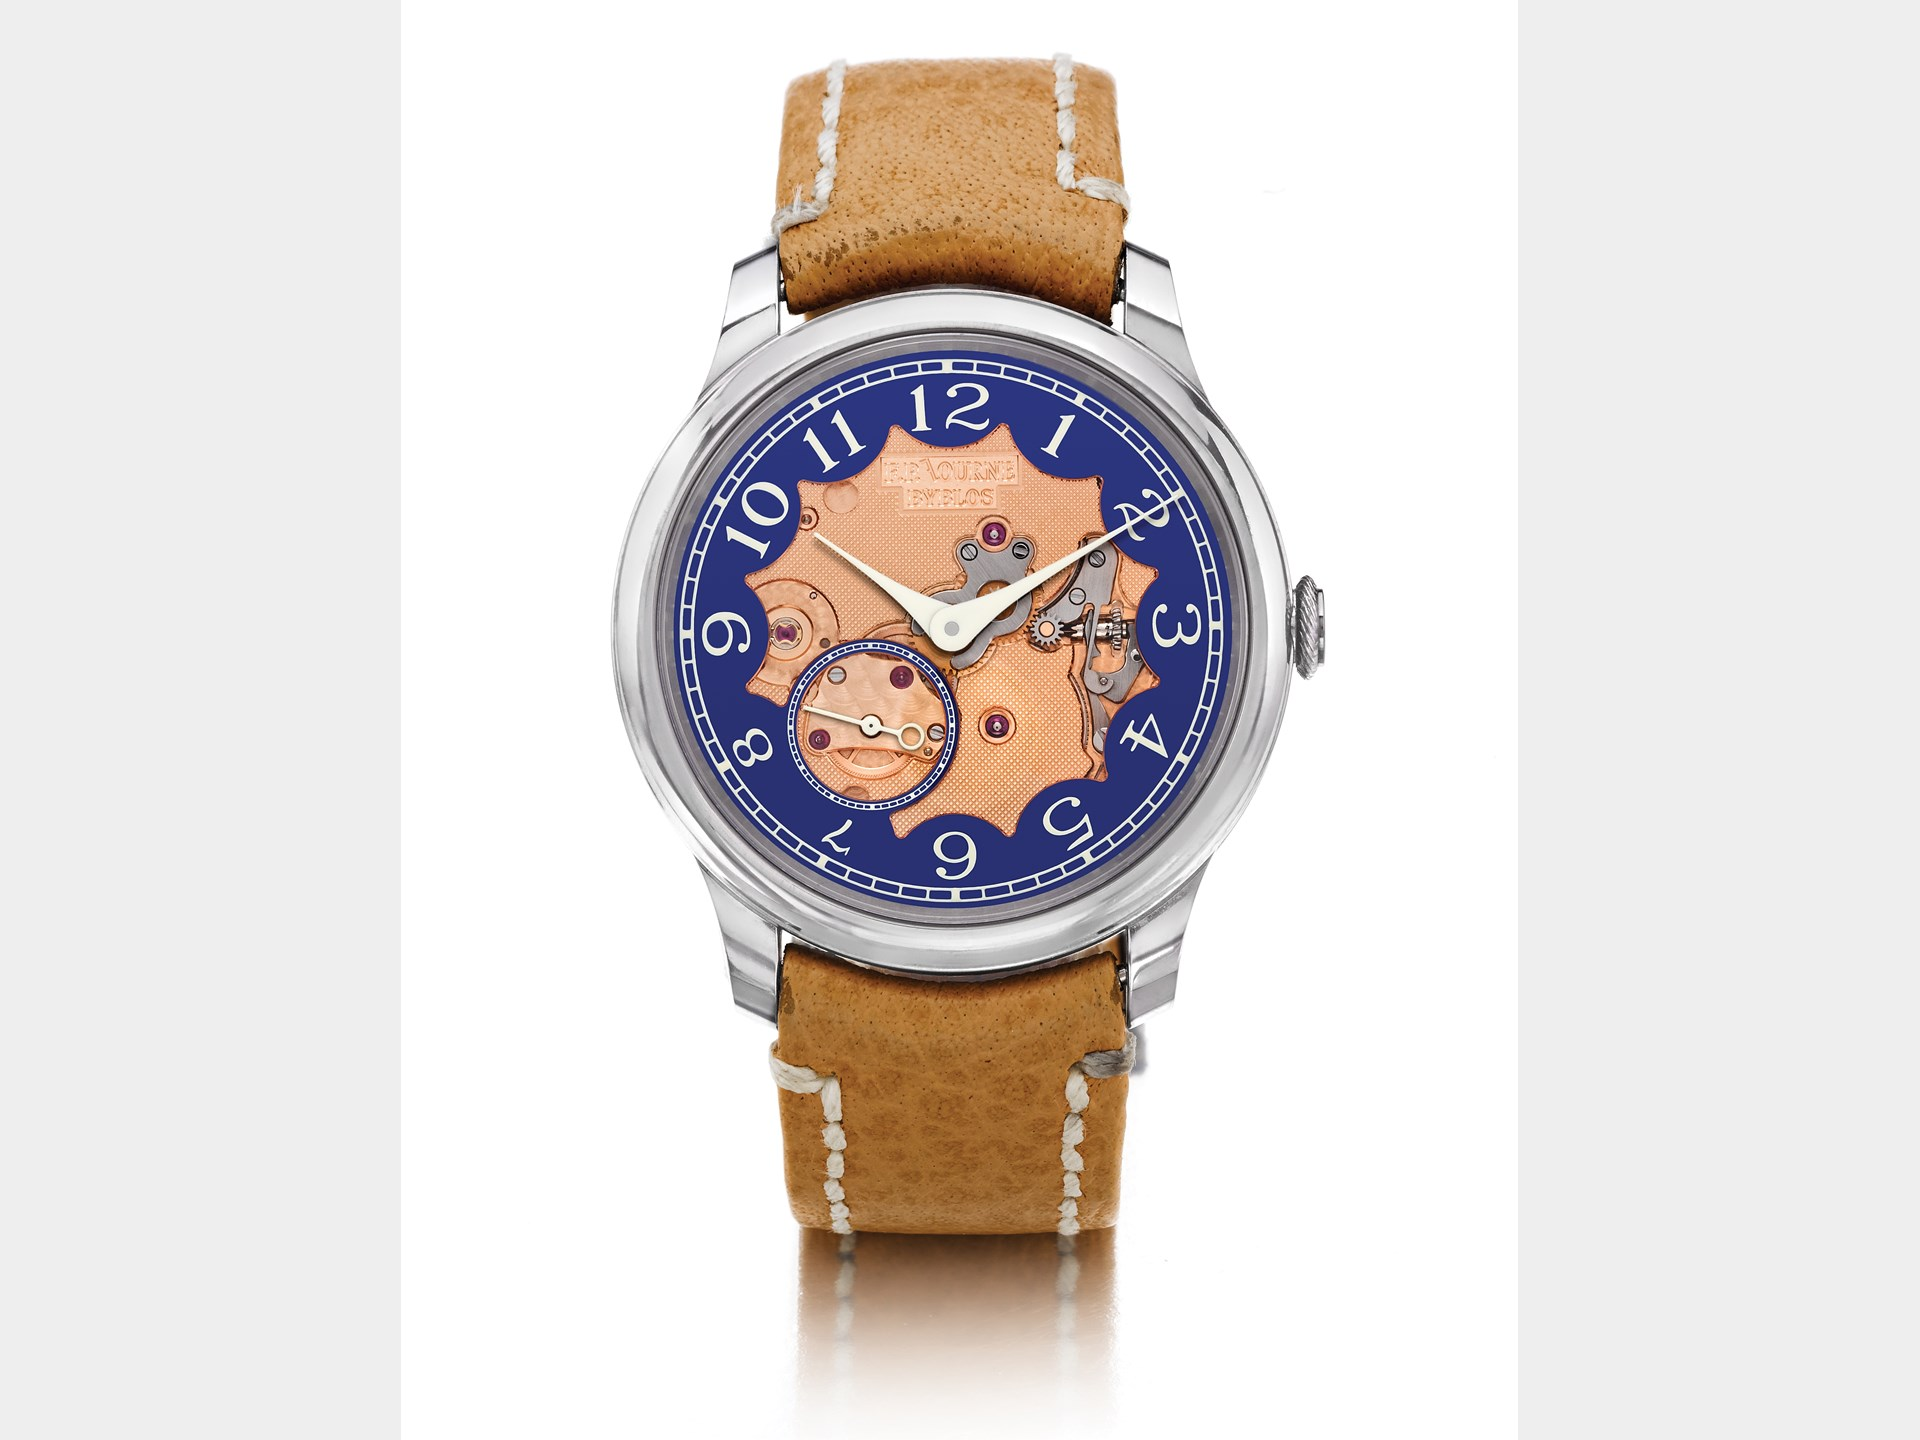 F.P. Journe, Fine and Limited Edition Tantalum Wristwatch